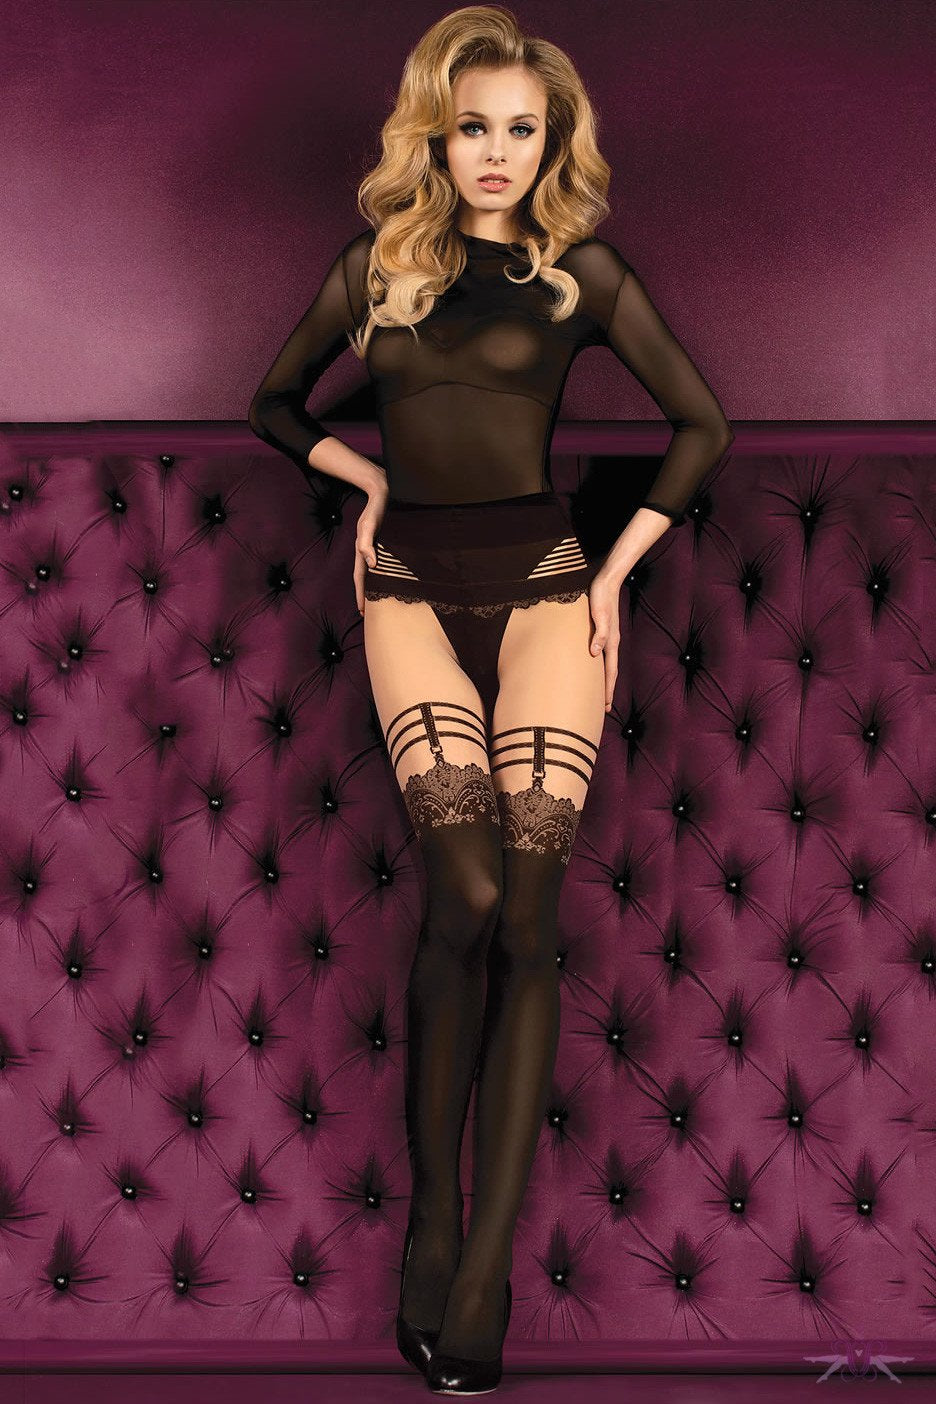 Ballerina Nude and Black Opaque Tights - The Hosiery Box